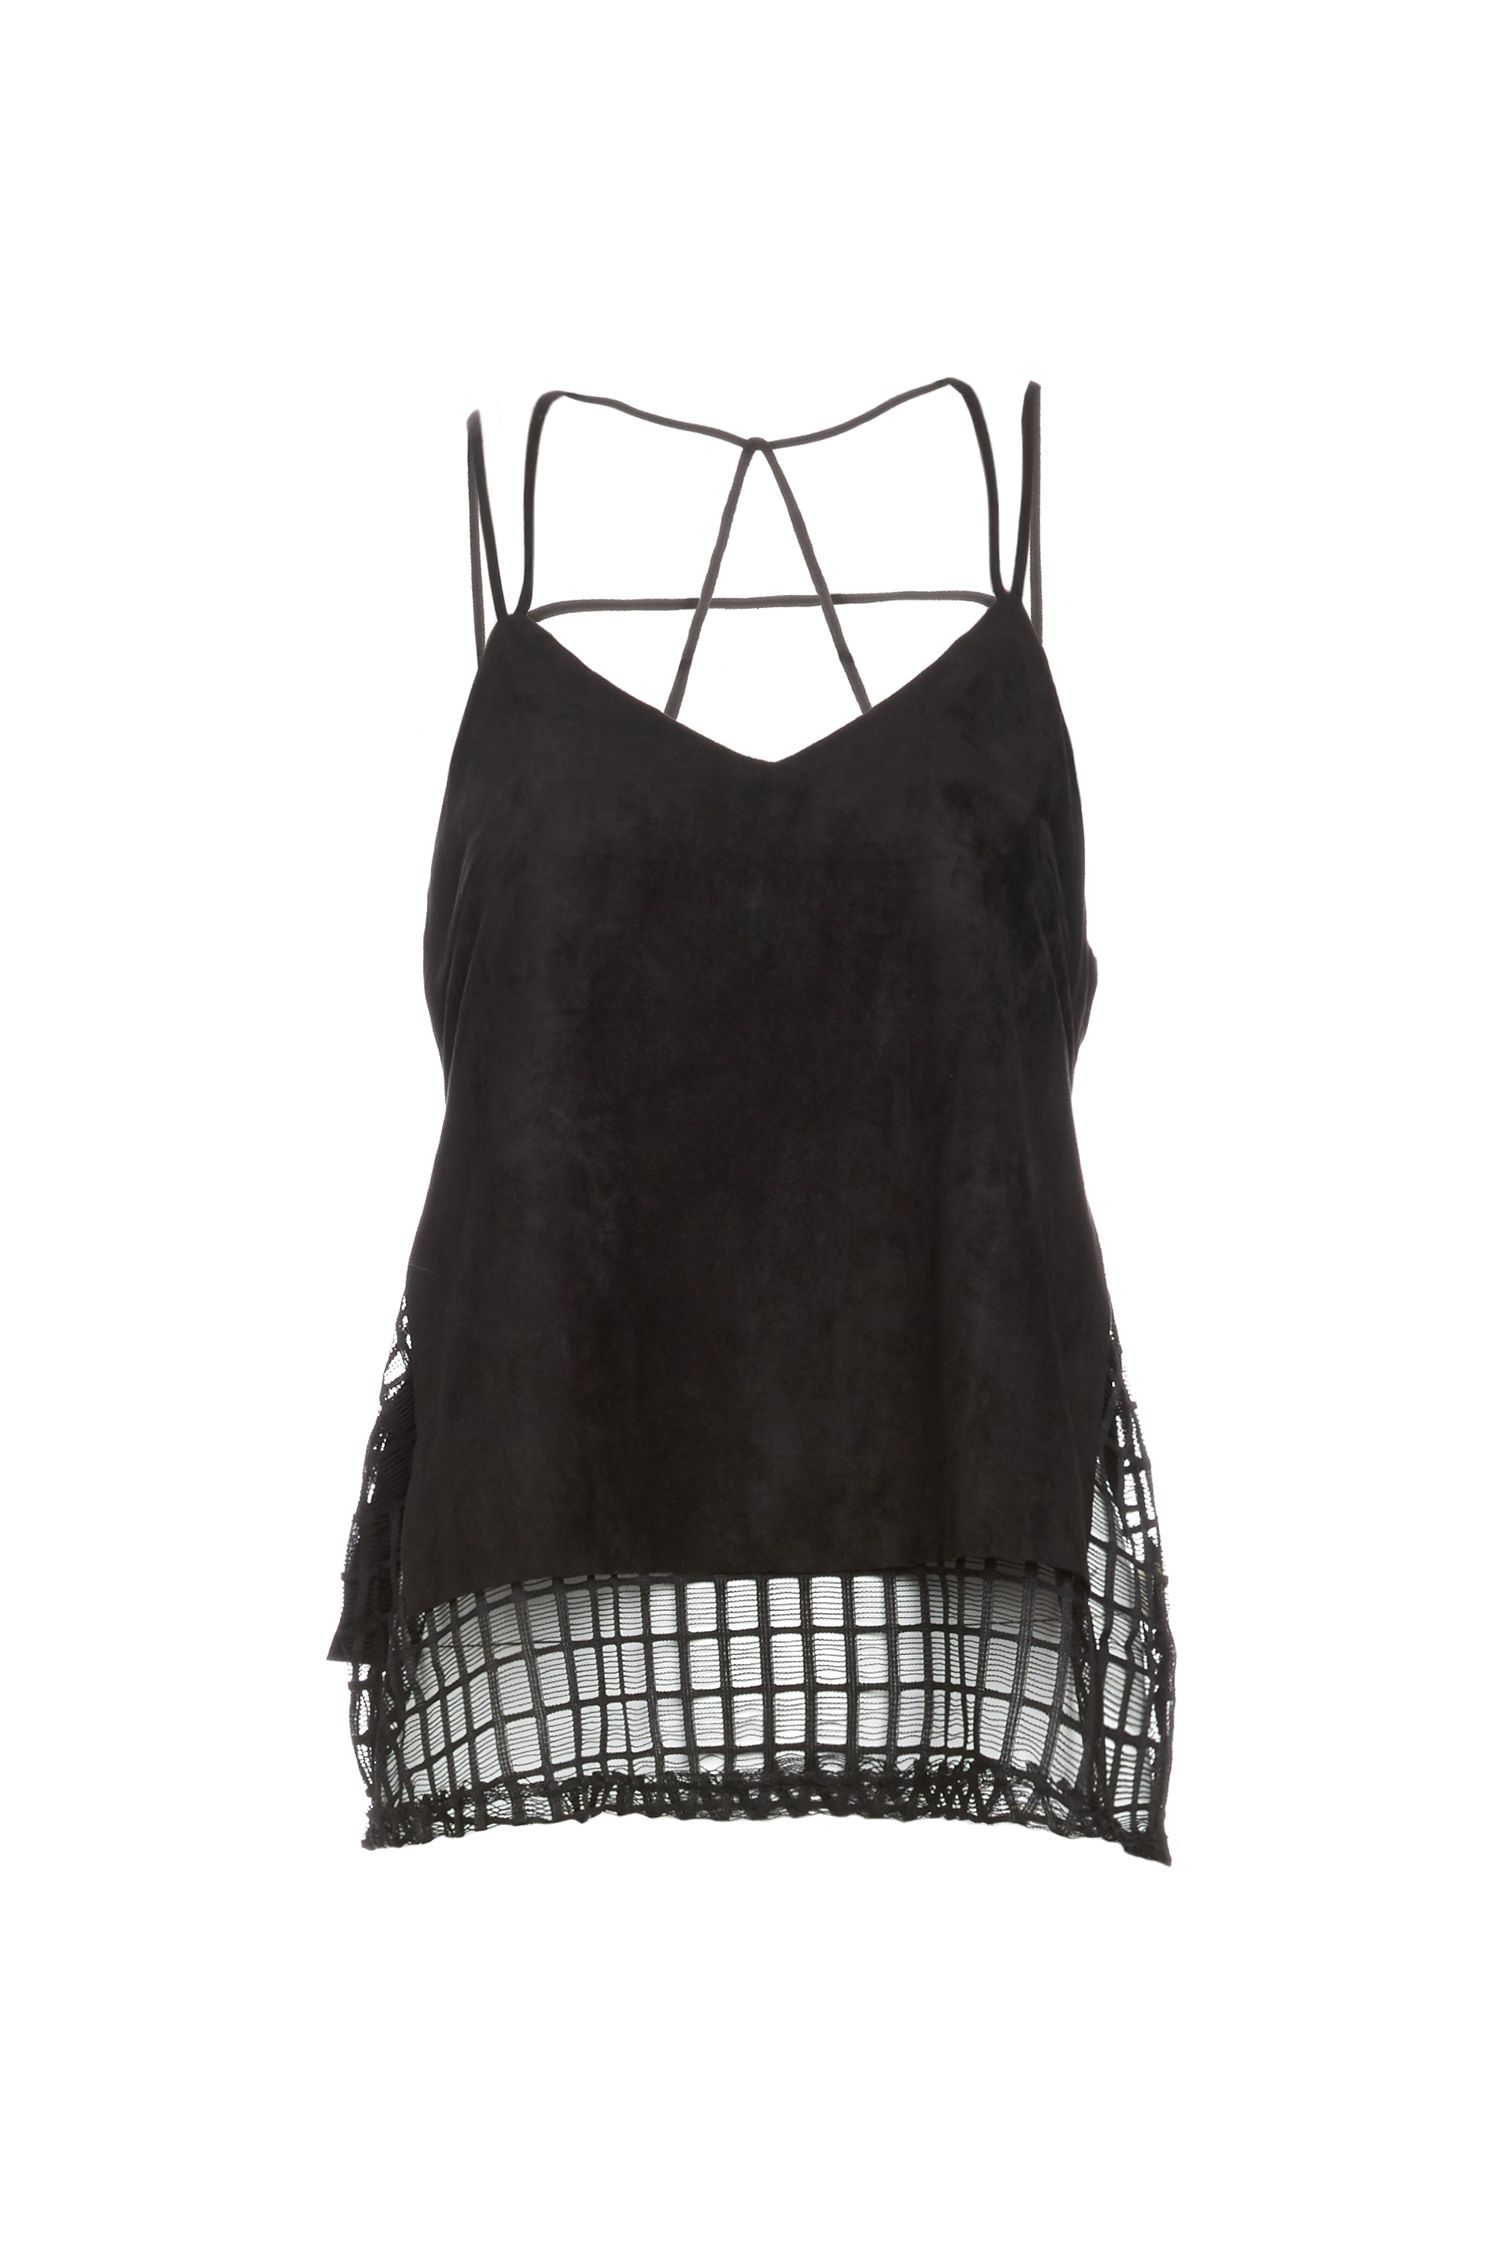 Grid Mesh Layered Cami Top  l DAILYLOOK Elite - personal styling service delivered right to your door